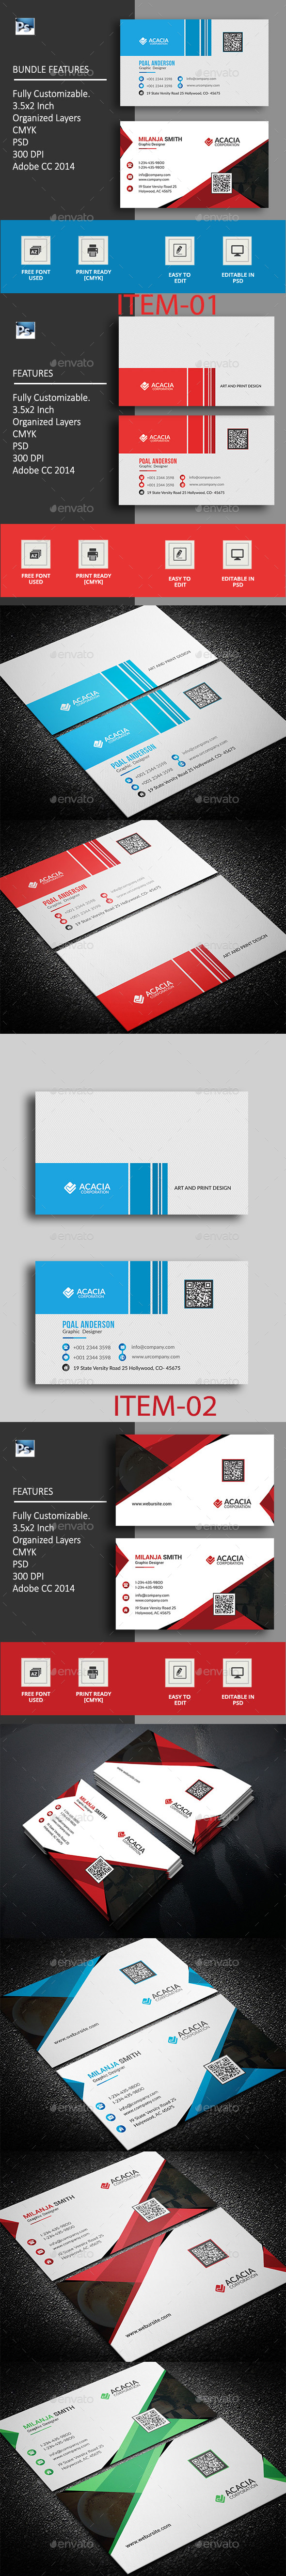 B. Card Bundle_15 (02 items) - Corporate Business Cards